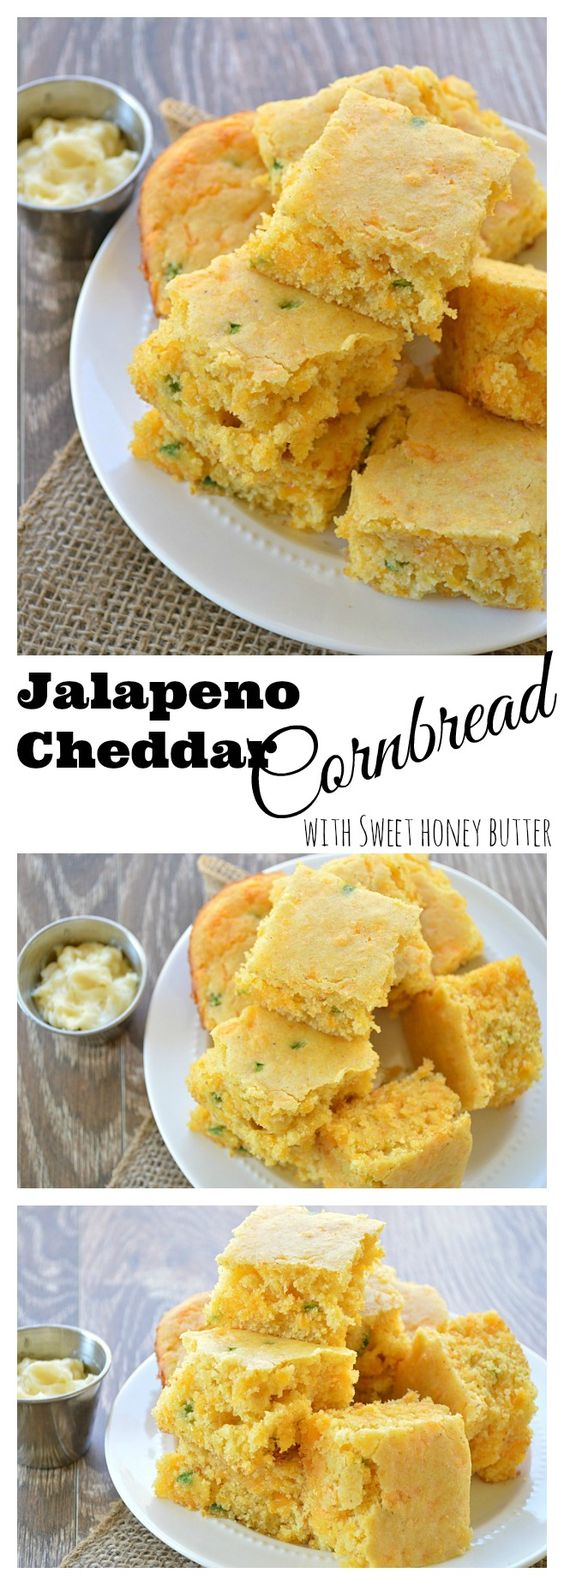 Jalapeno Cheddar Cornbread with Sweet Honey Butter